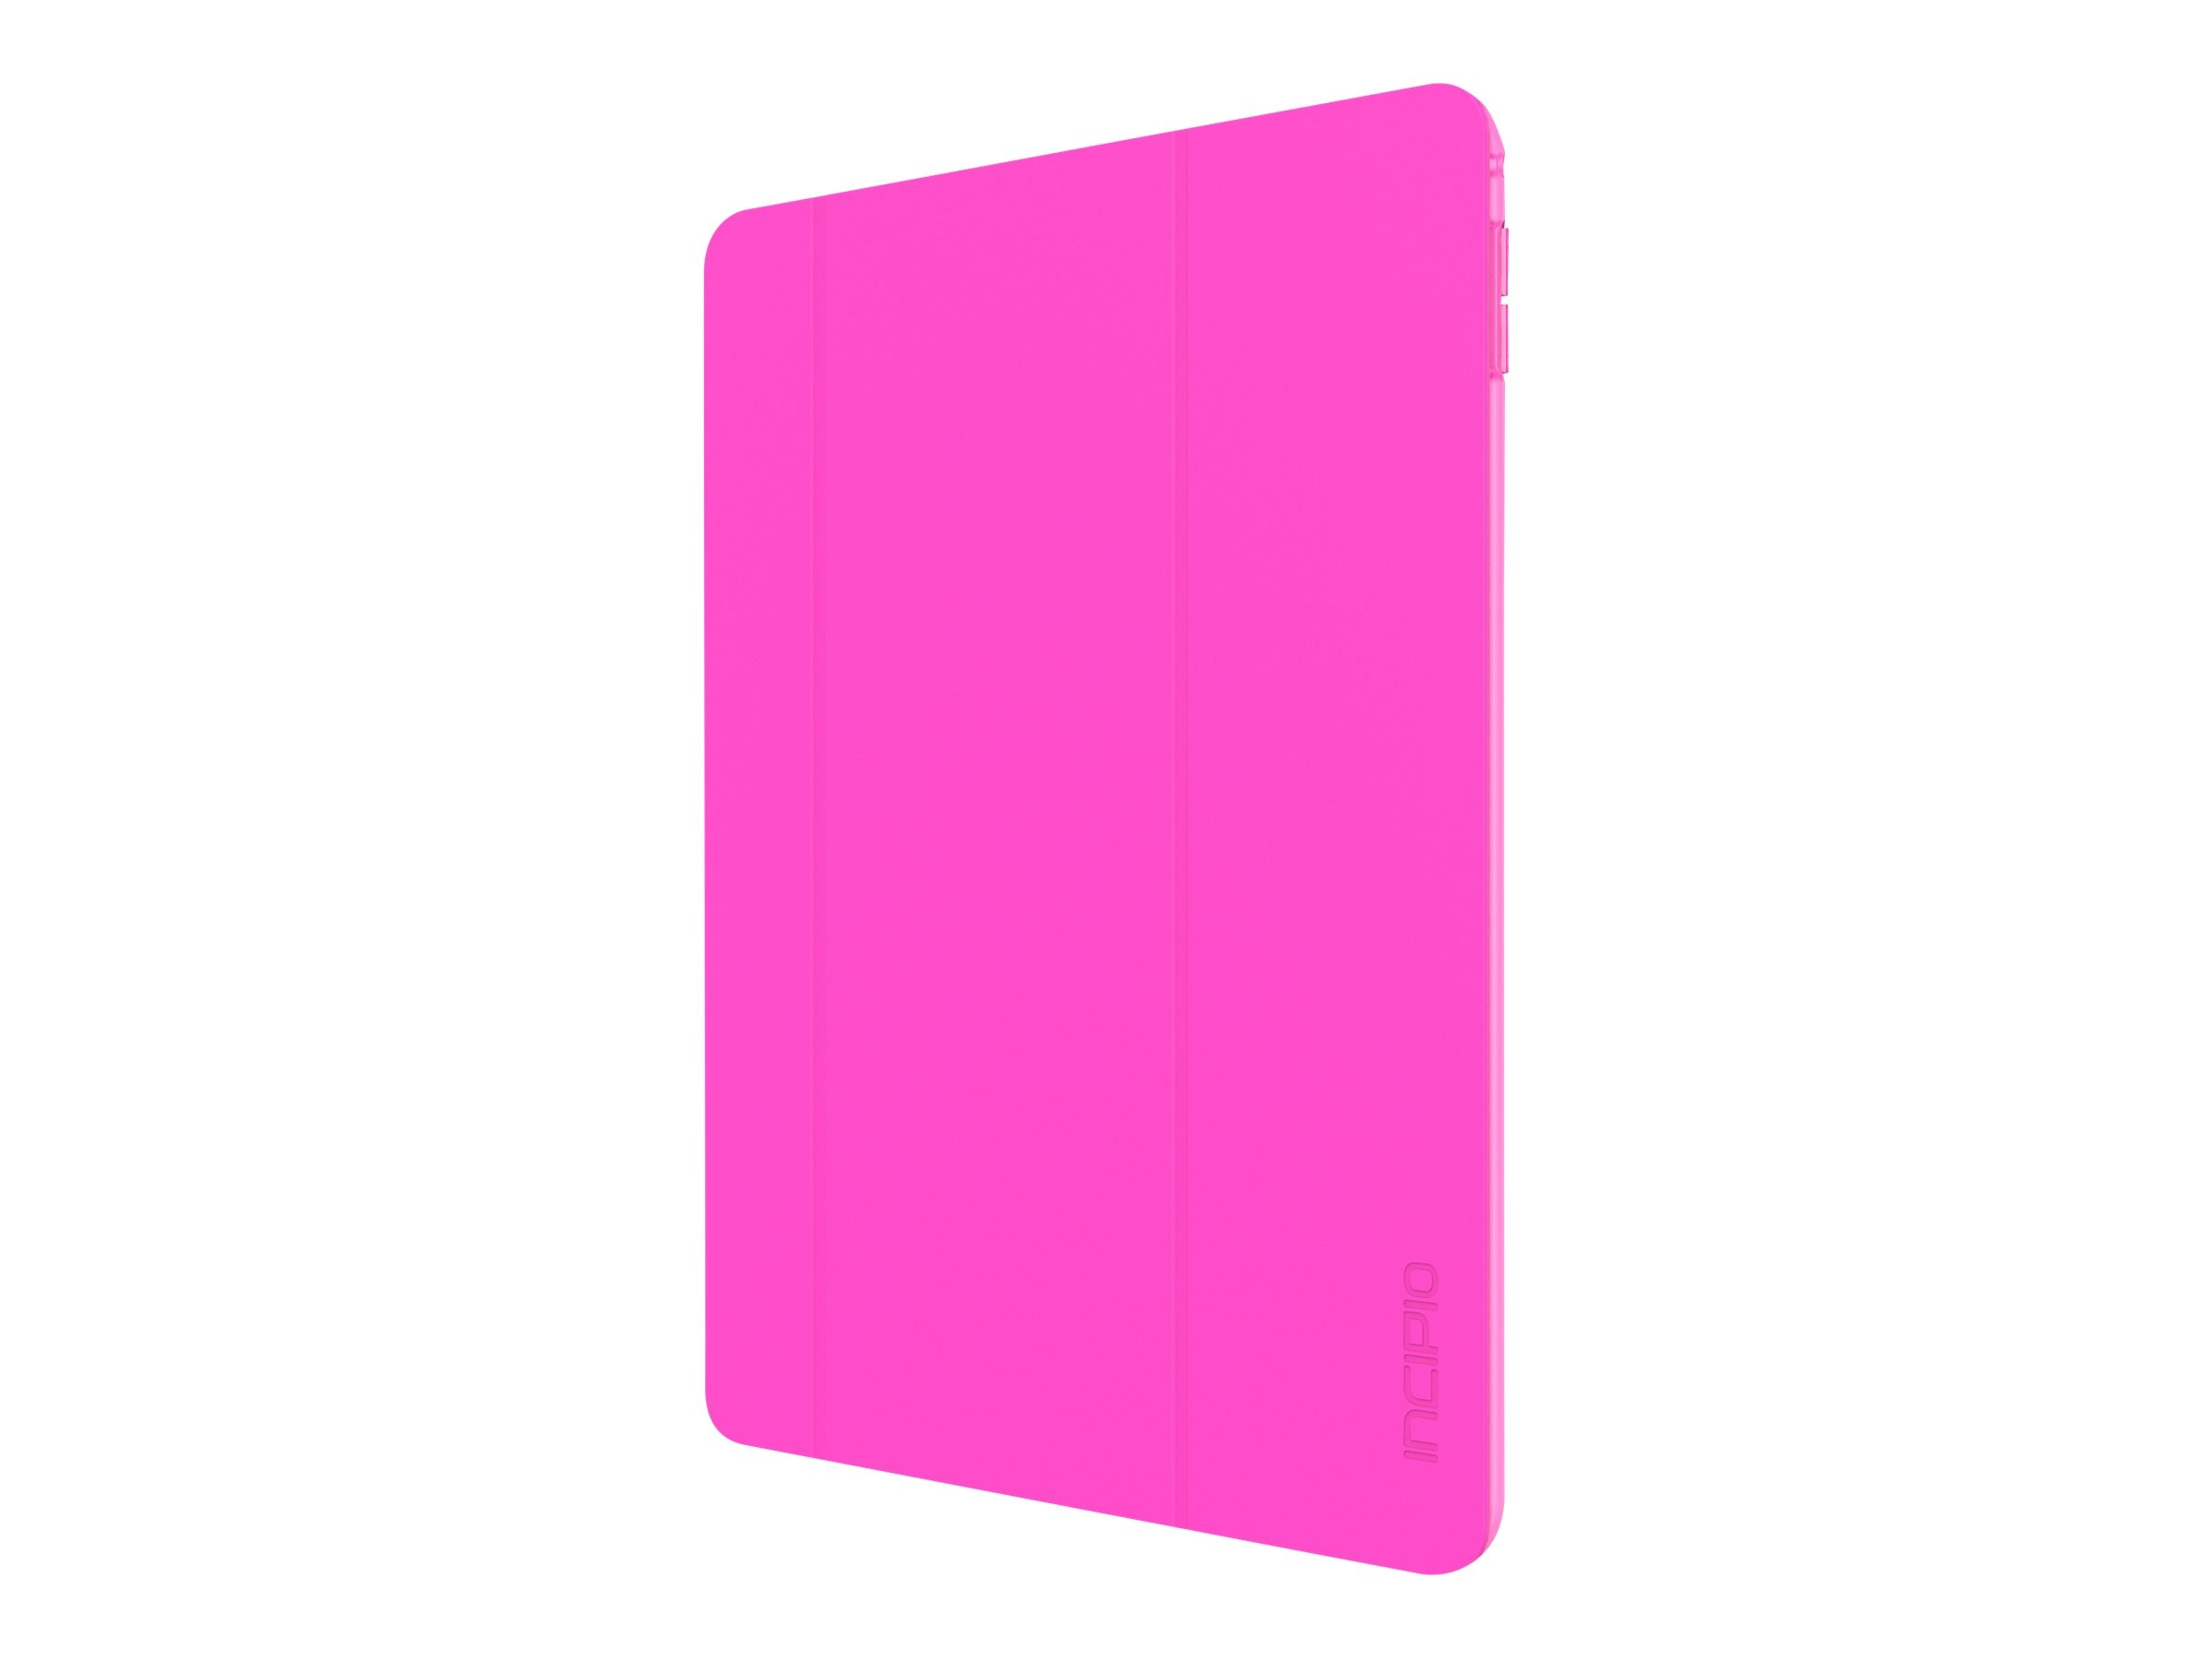 Incipio Octane Pure Translucent Co-Molded Folio for iPad Pro 9.7, Pink